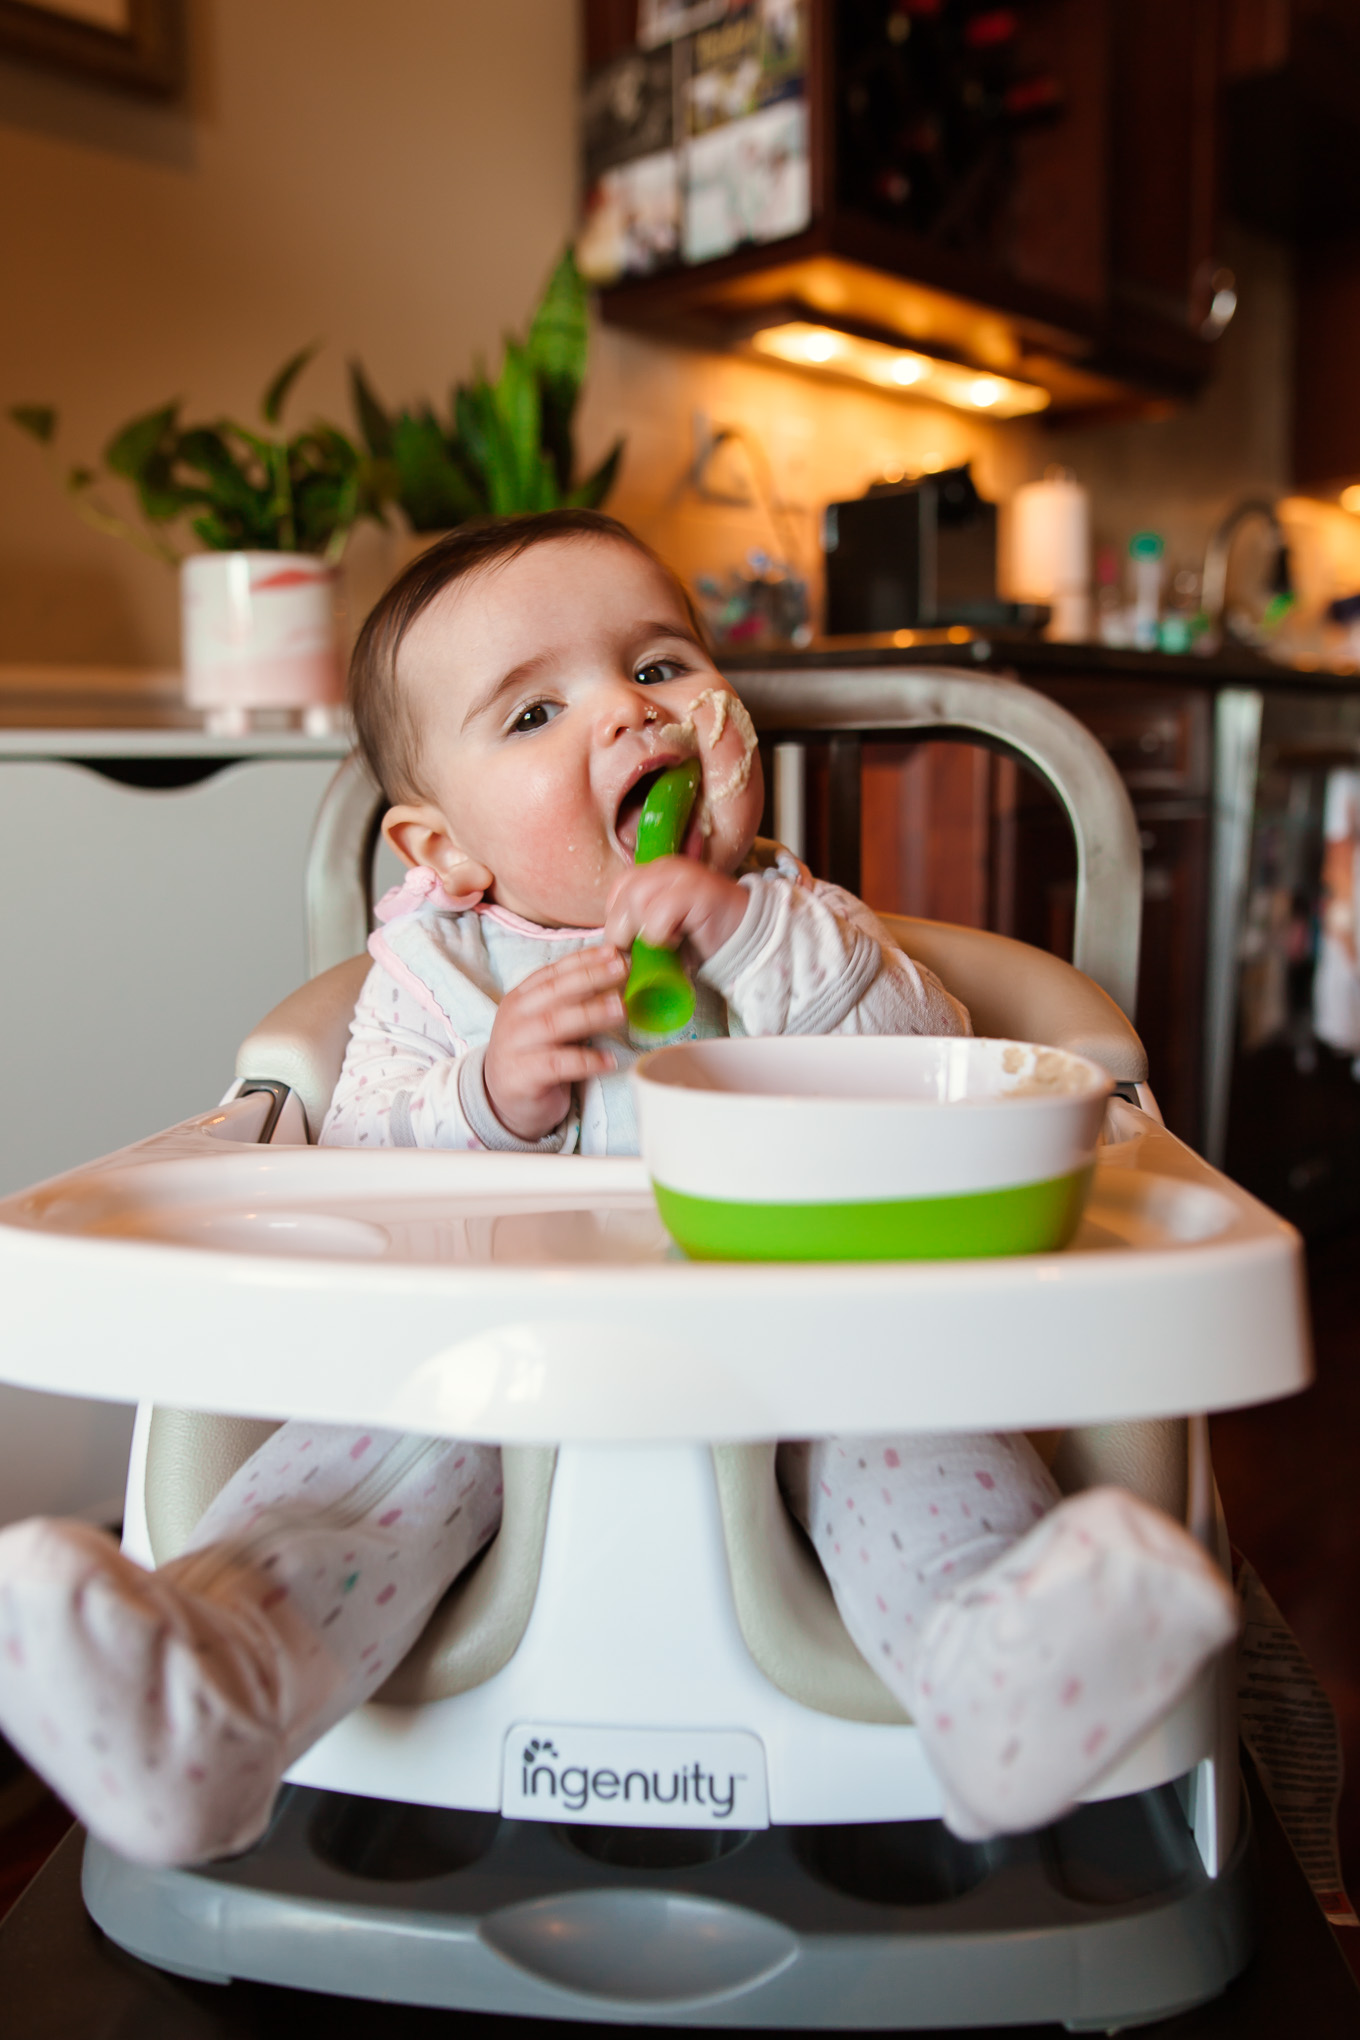 Ingenuity Baby Seat by popular Chicago mommy blog, Glass of Glam: image of a baby sitting in a Ingenuity baby seat and eating baby cereal.